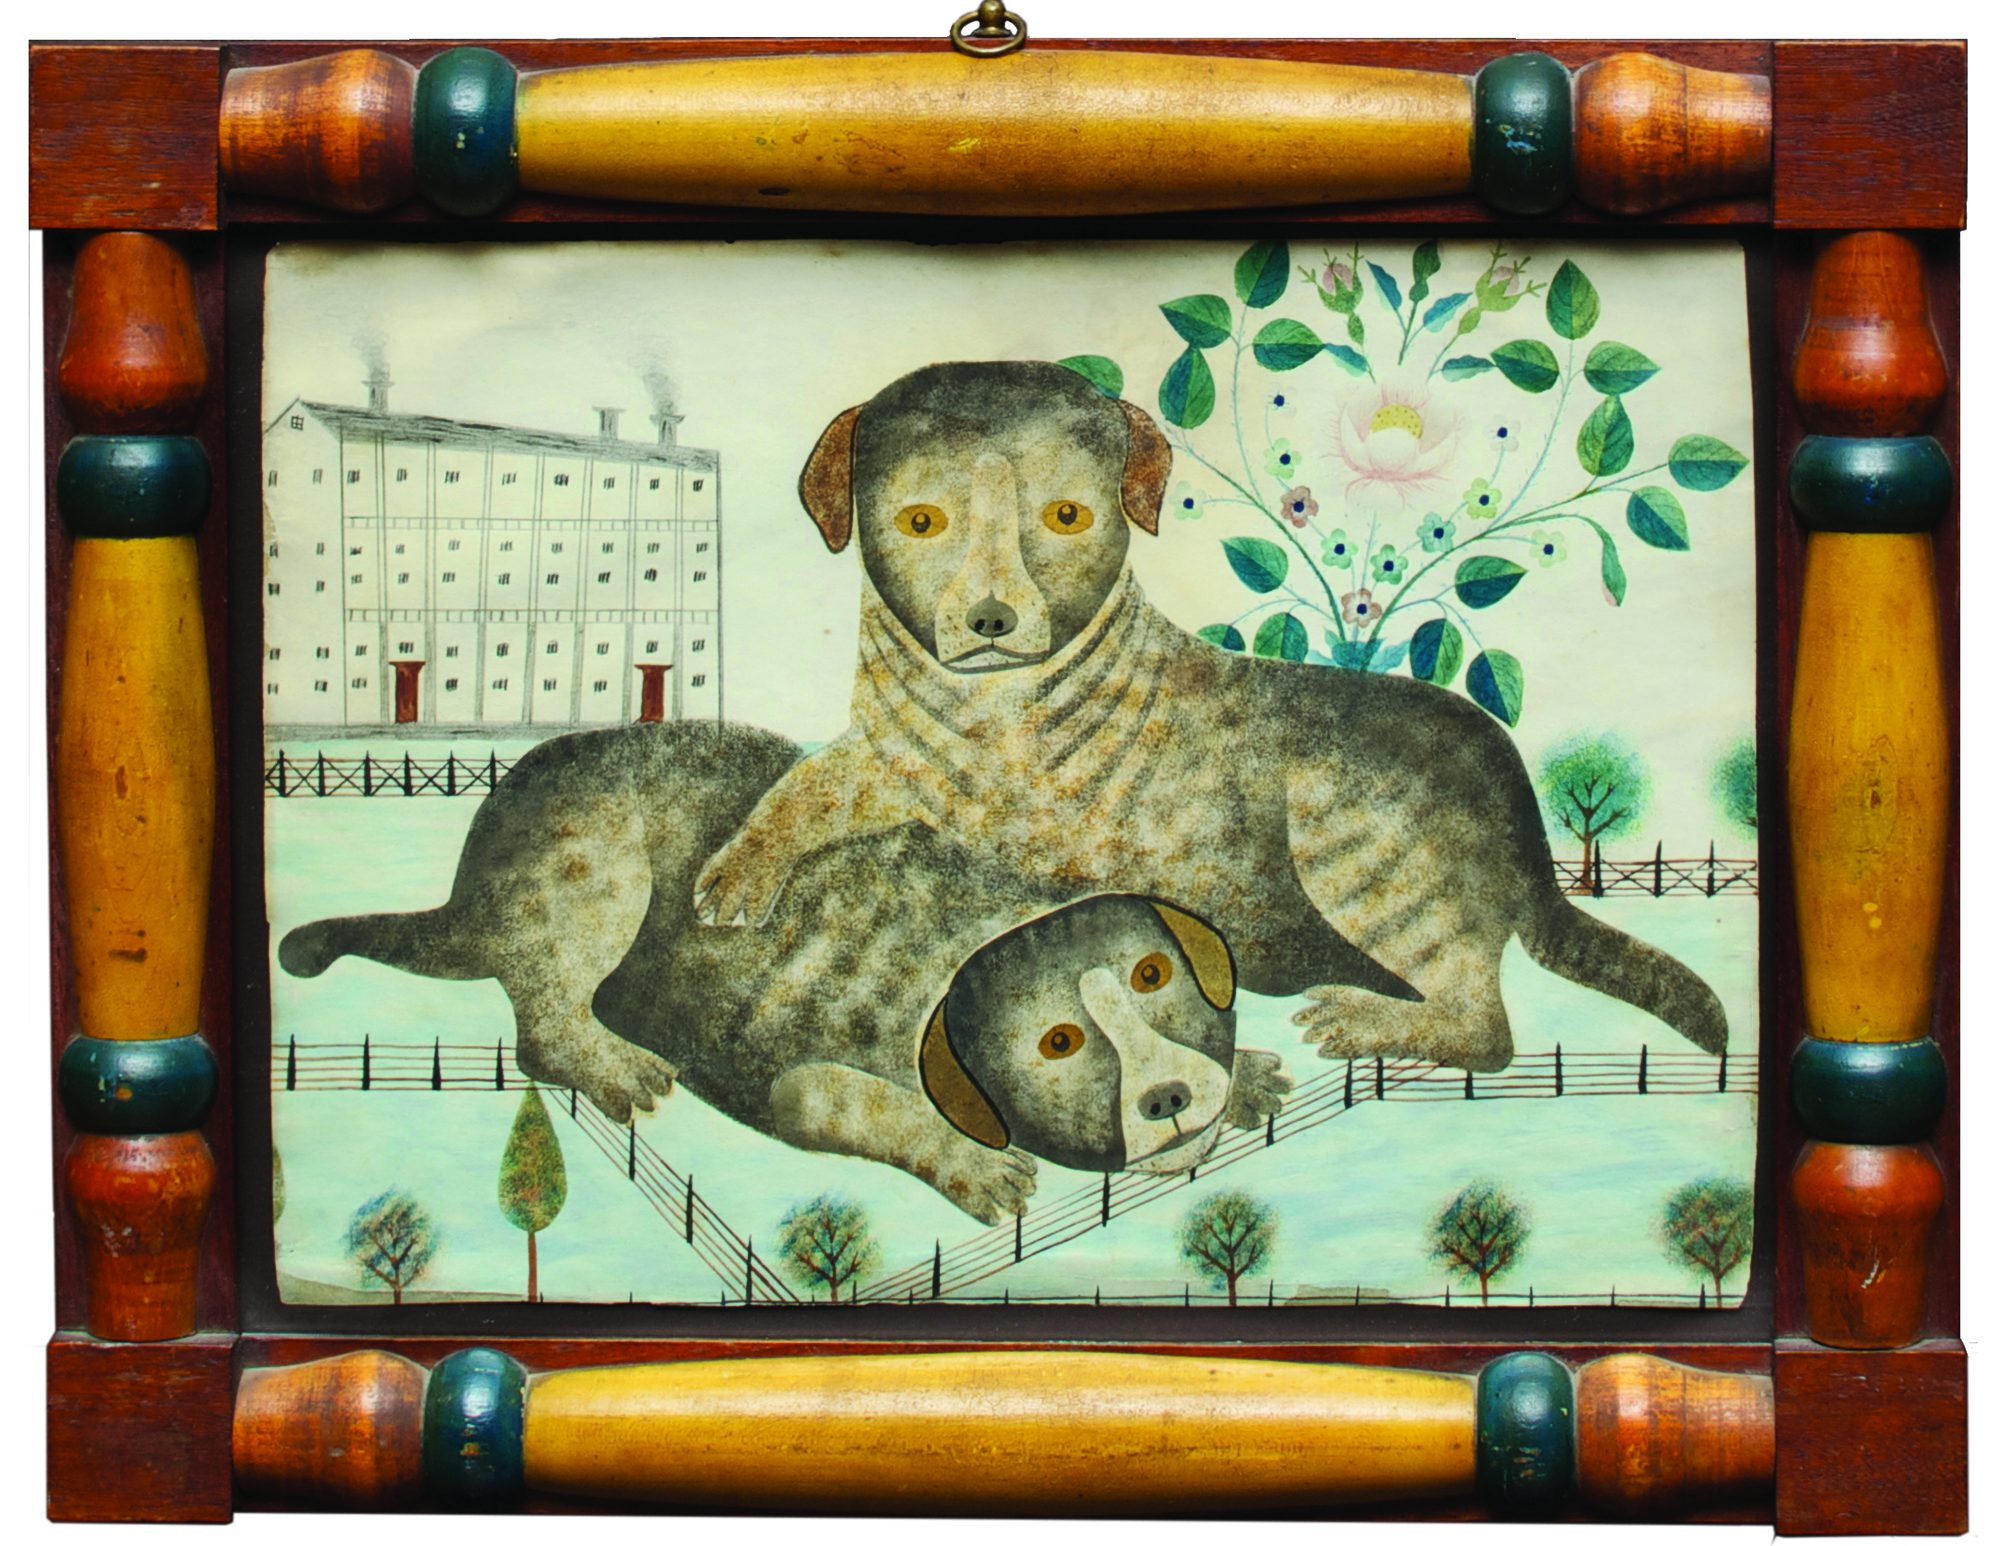 Stenciled Drawing of Two Puppies, mid-19th century. Collection of Jonathan and Karin Fielding. Photo by Arthur Evans.